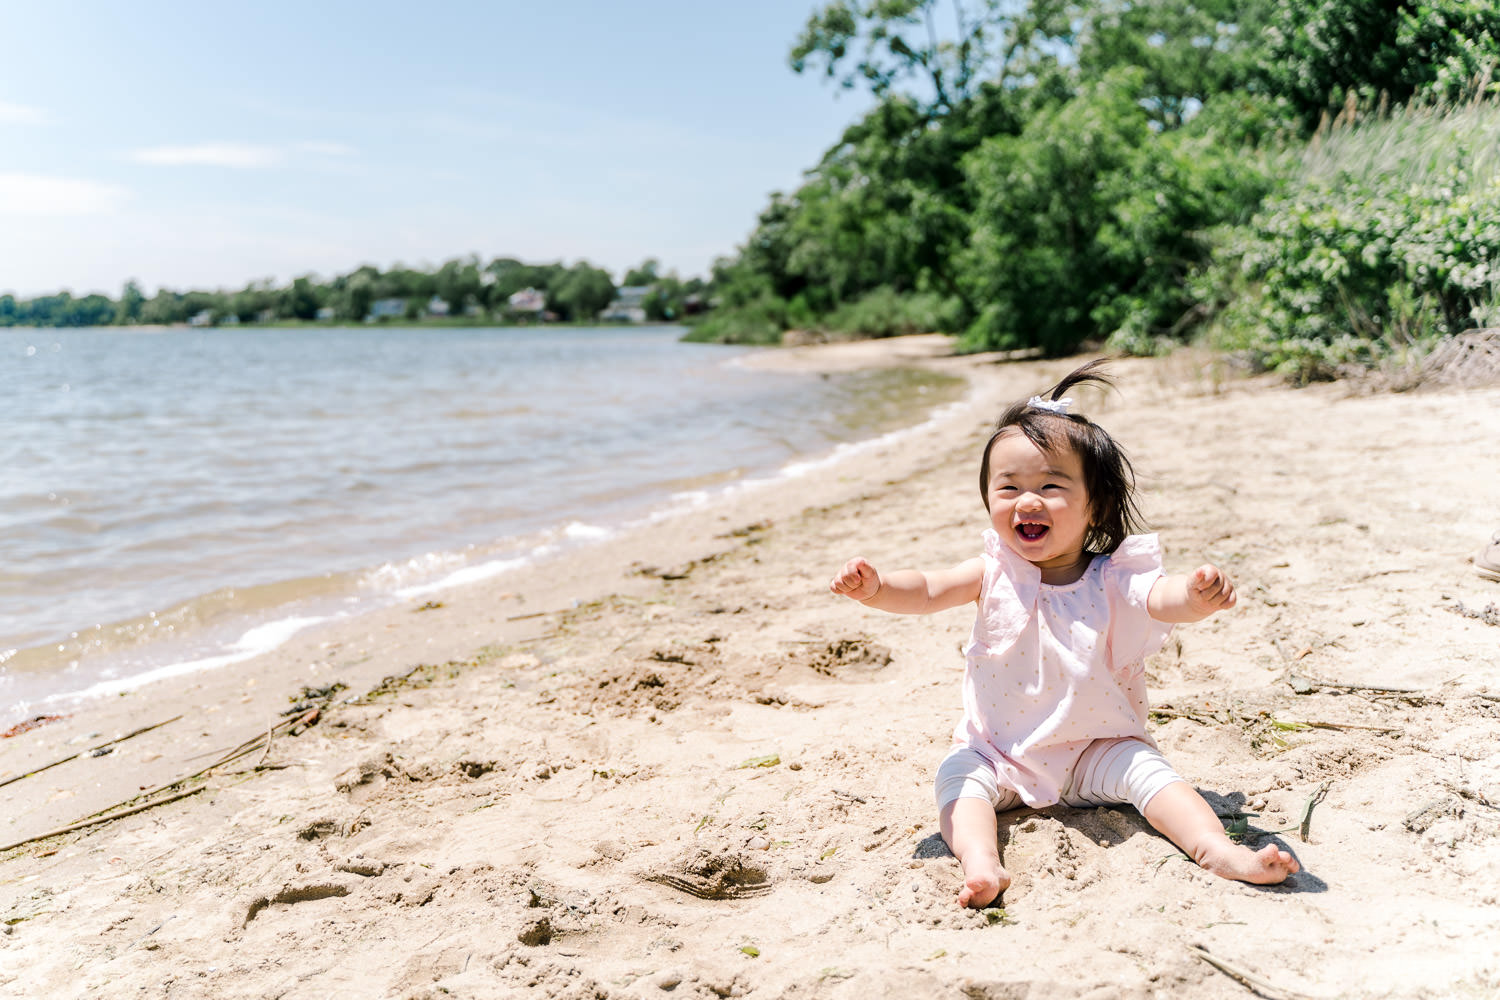 A baby girl sits near the water at the beach.